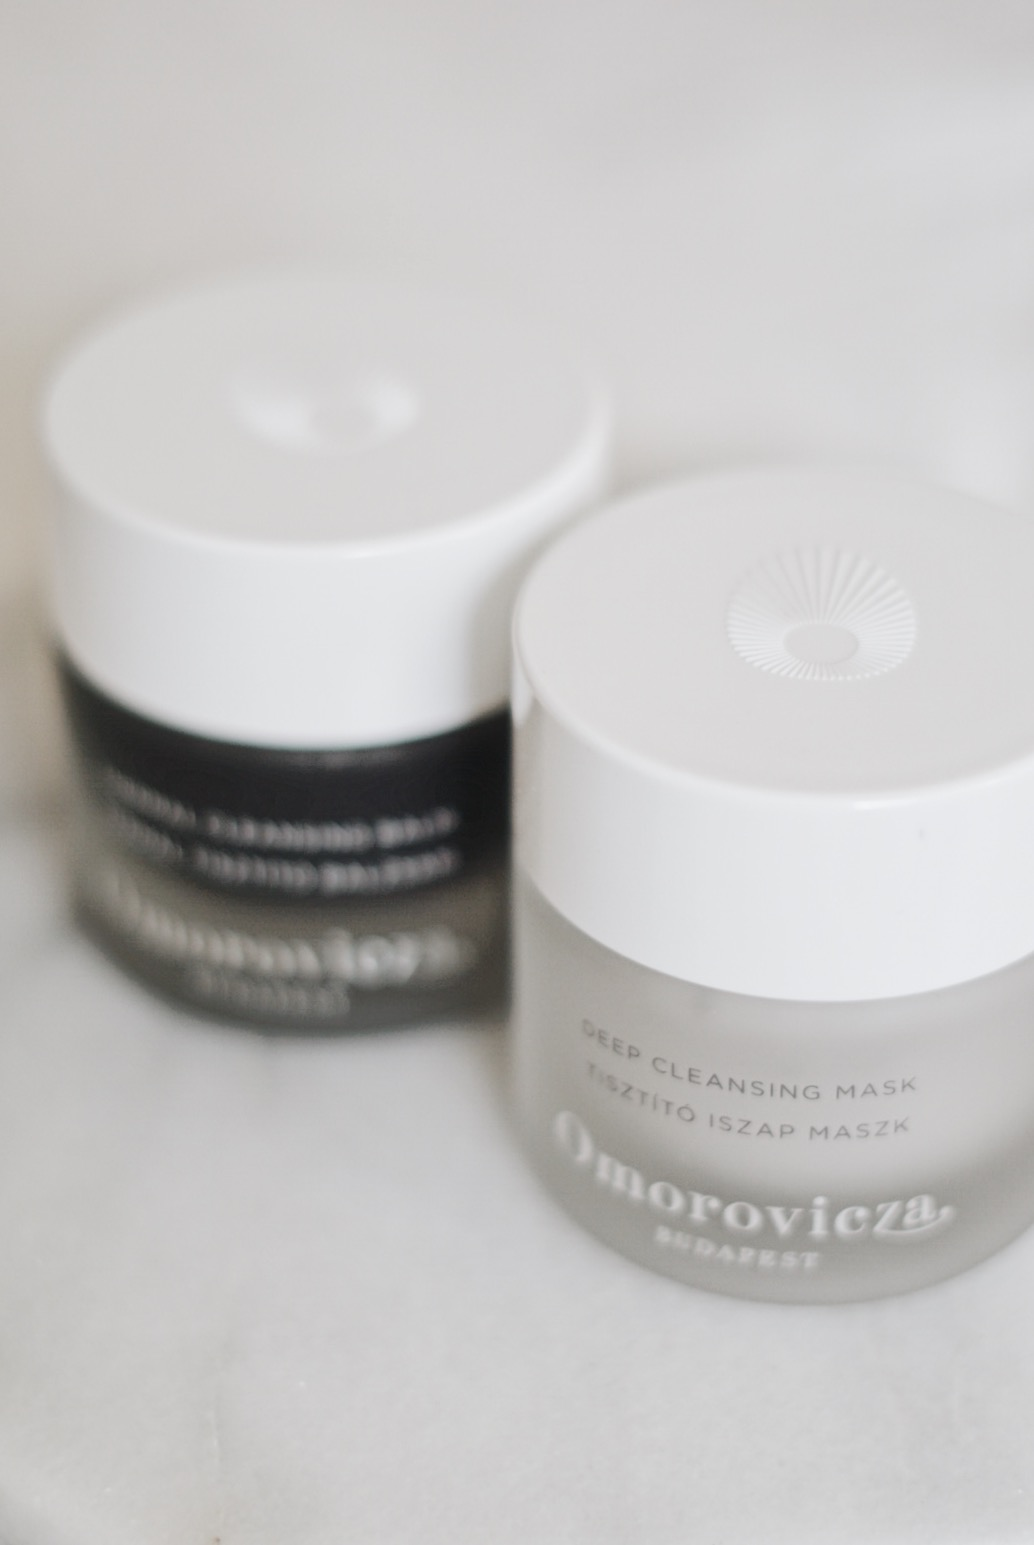 Omorovicza Thermal Cleansing Balm and Deep Cleansing Mask